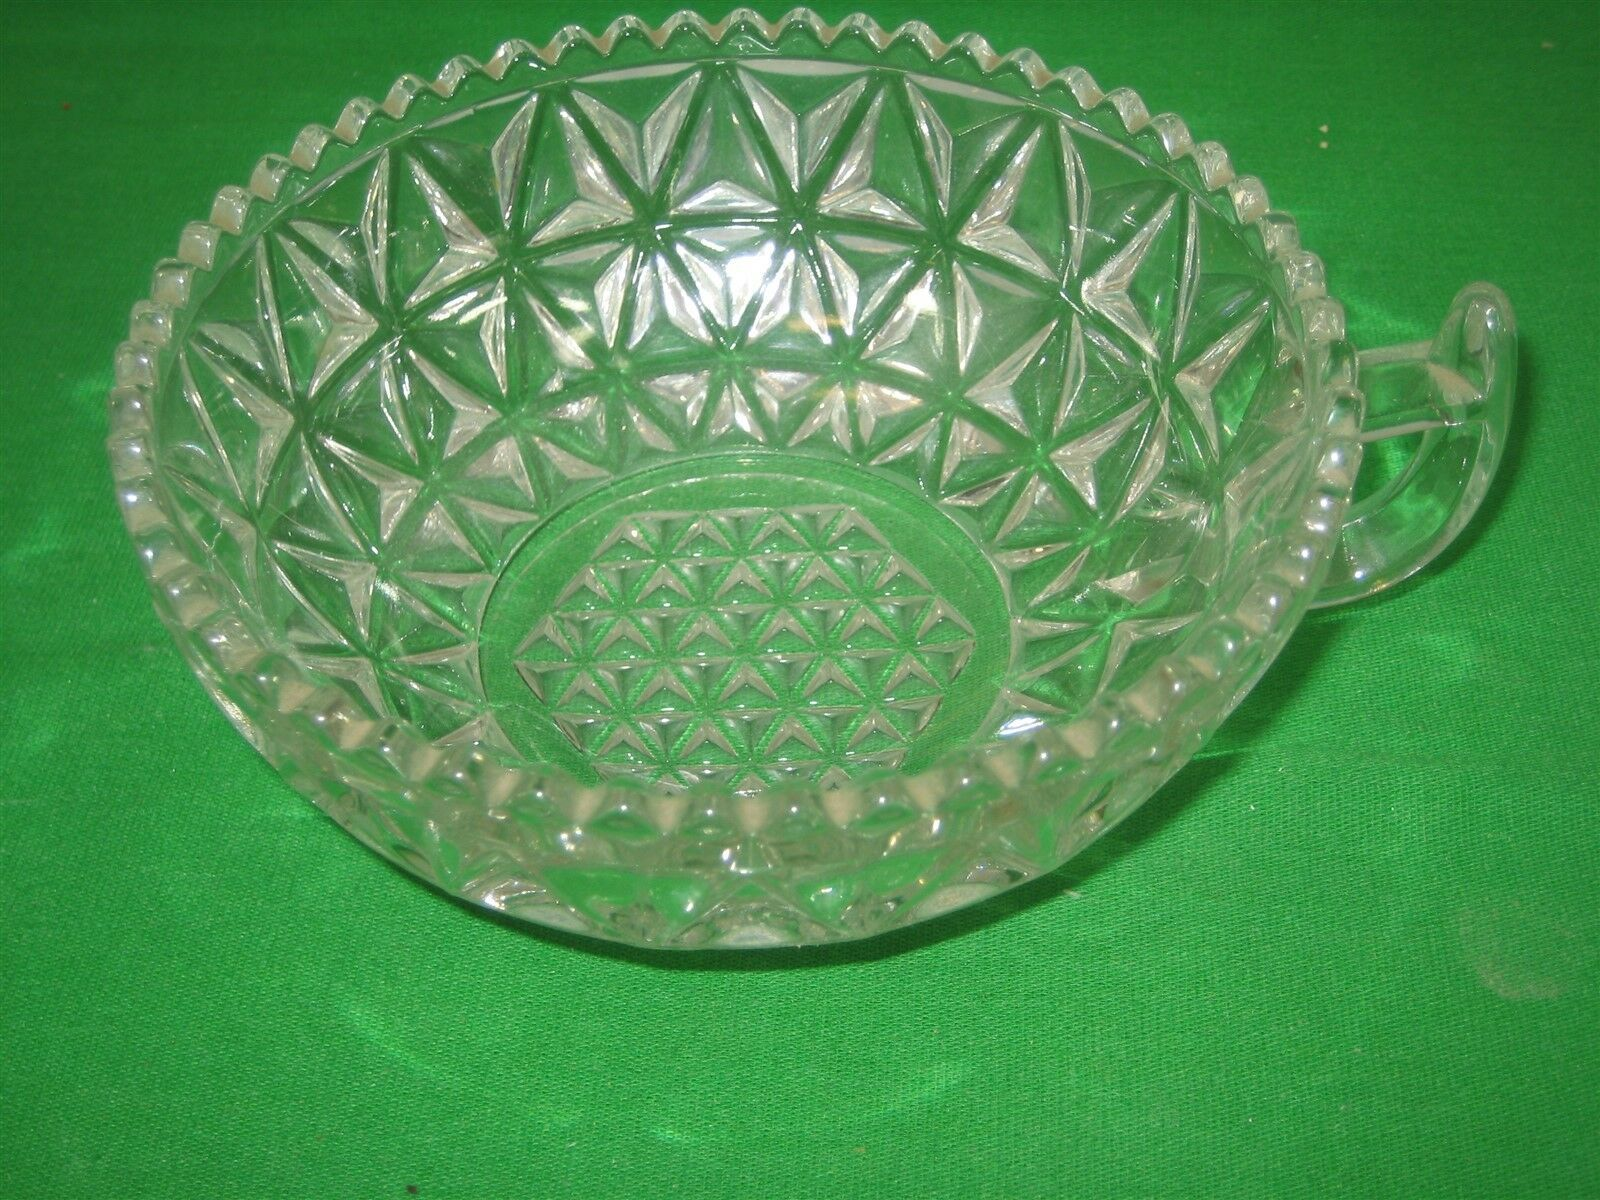 Vintage Clear Glass Saw Tooth Scalloped Top Edge Candy Dish Bowl - $9.46